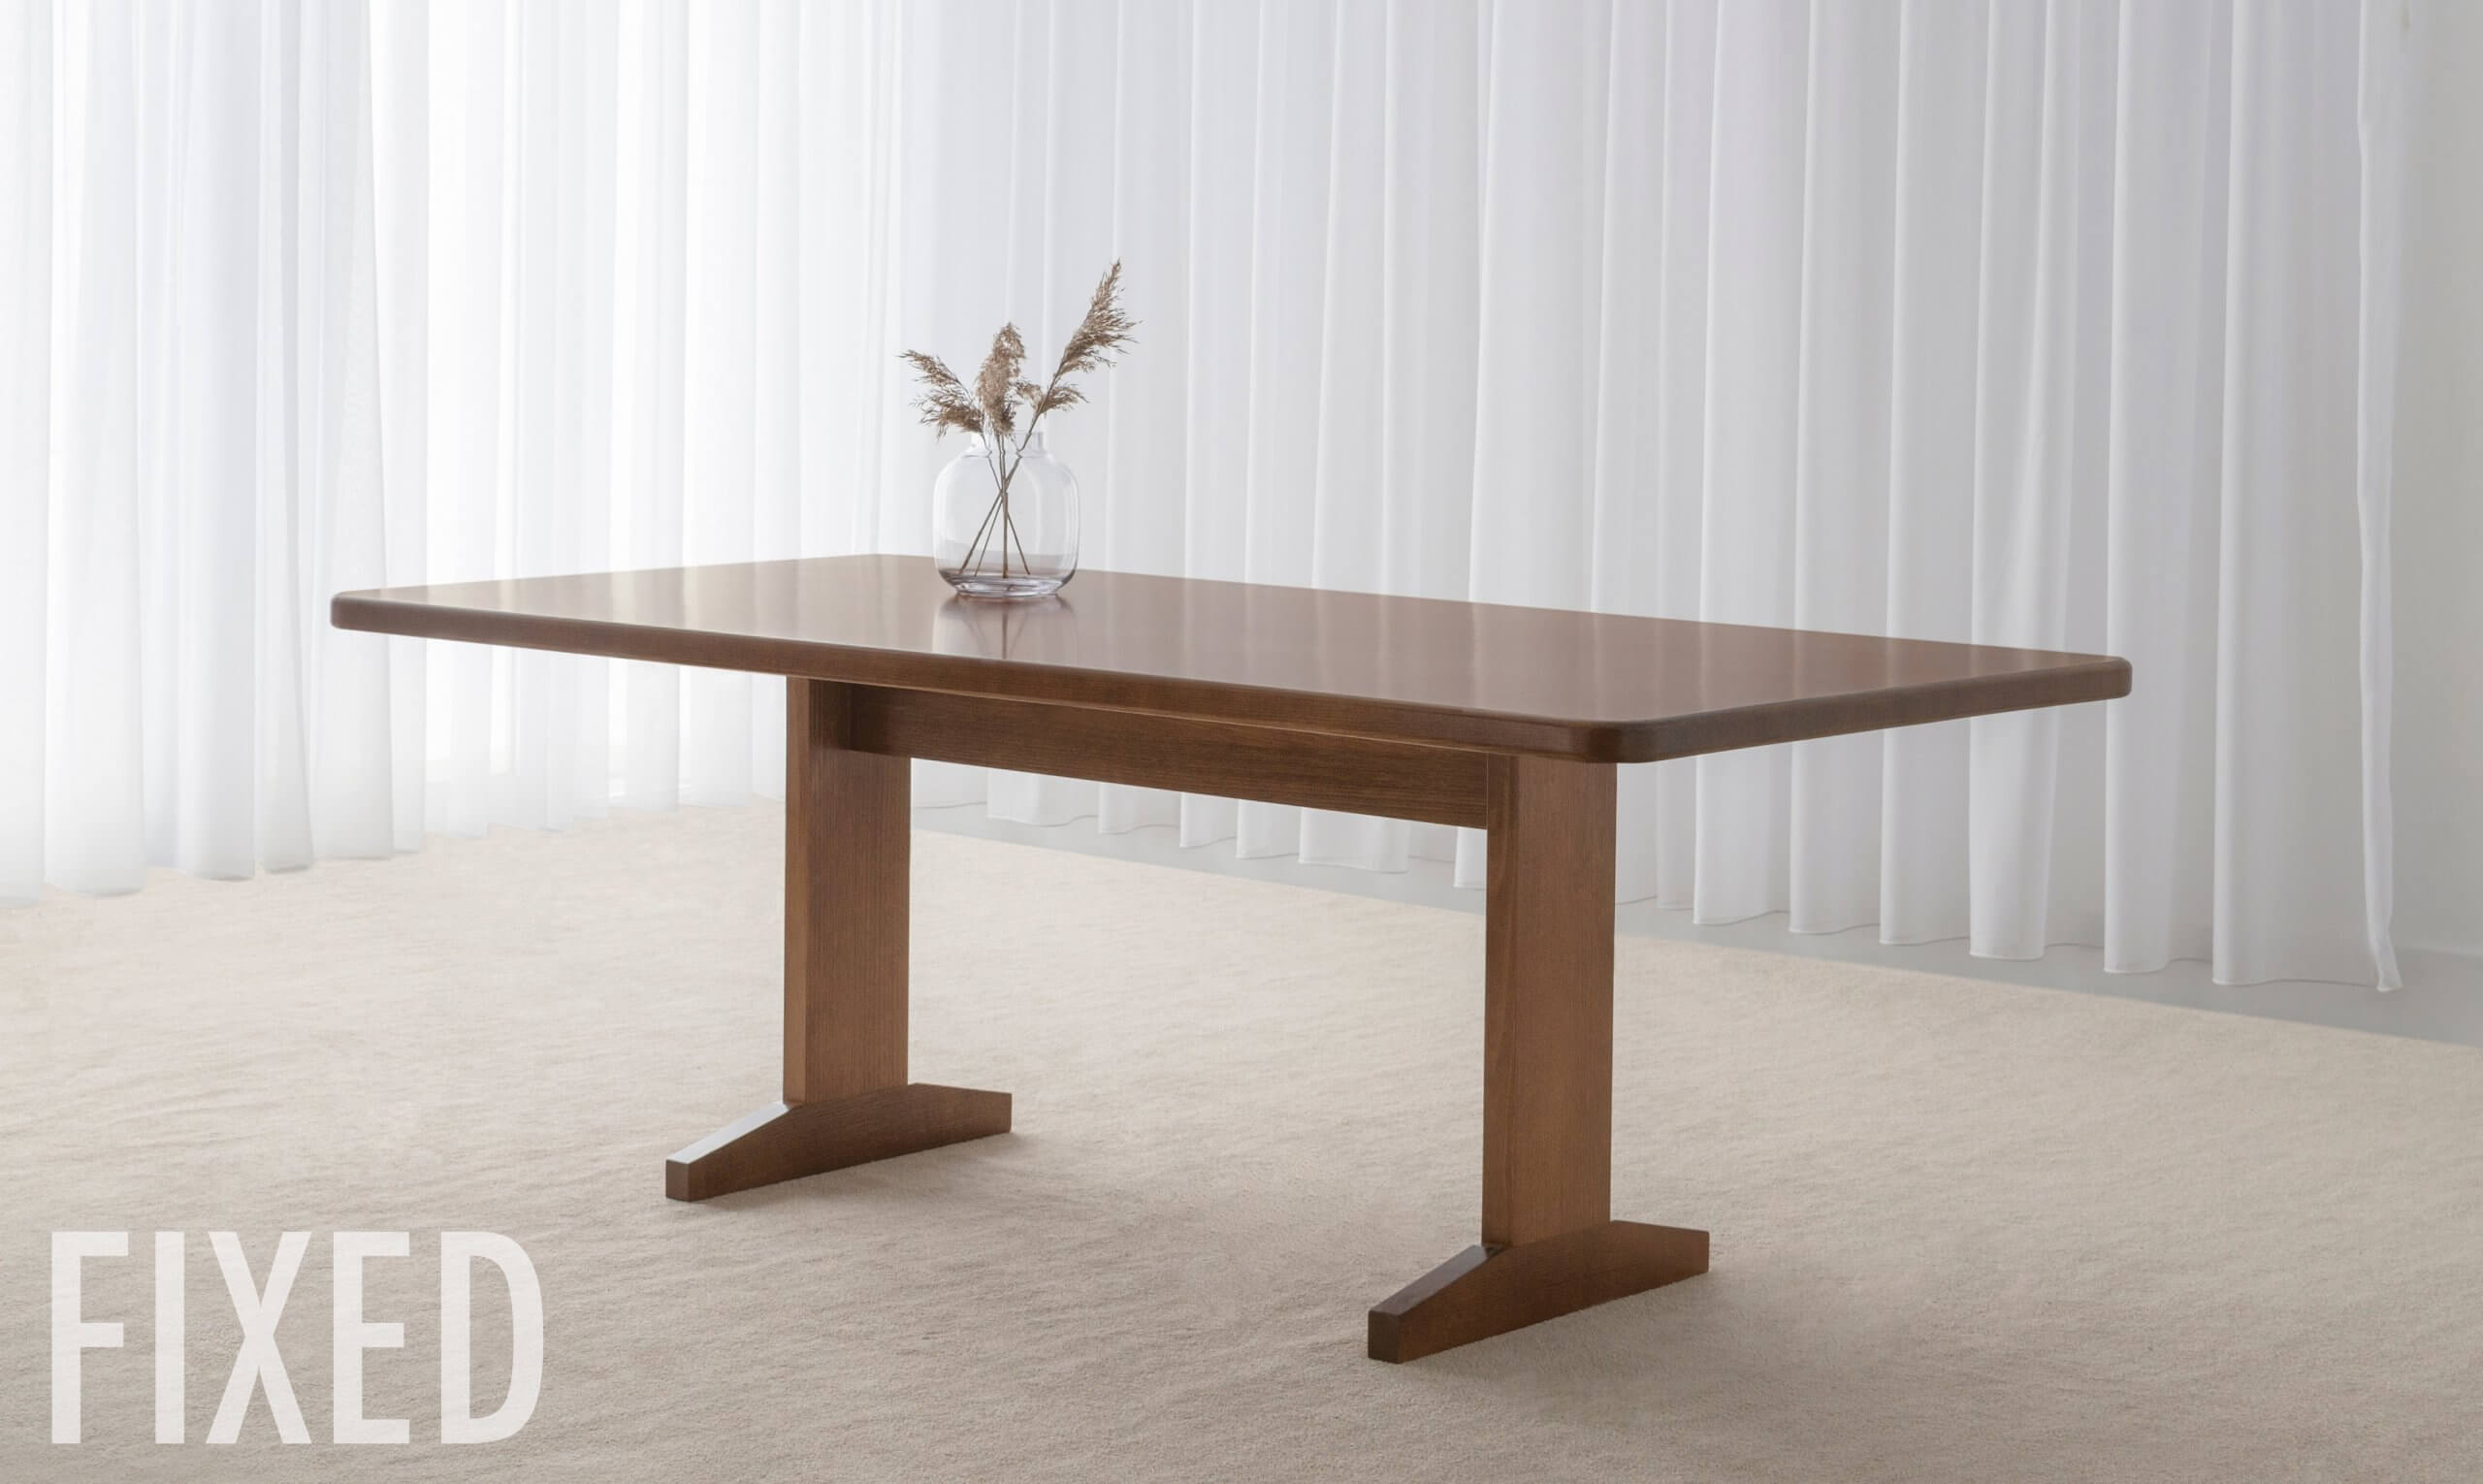 Fixed dining table crafted in hardwood timber with traditional design